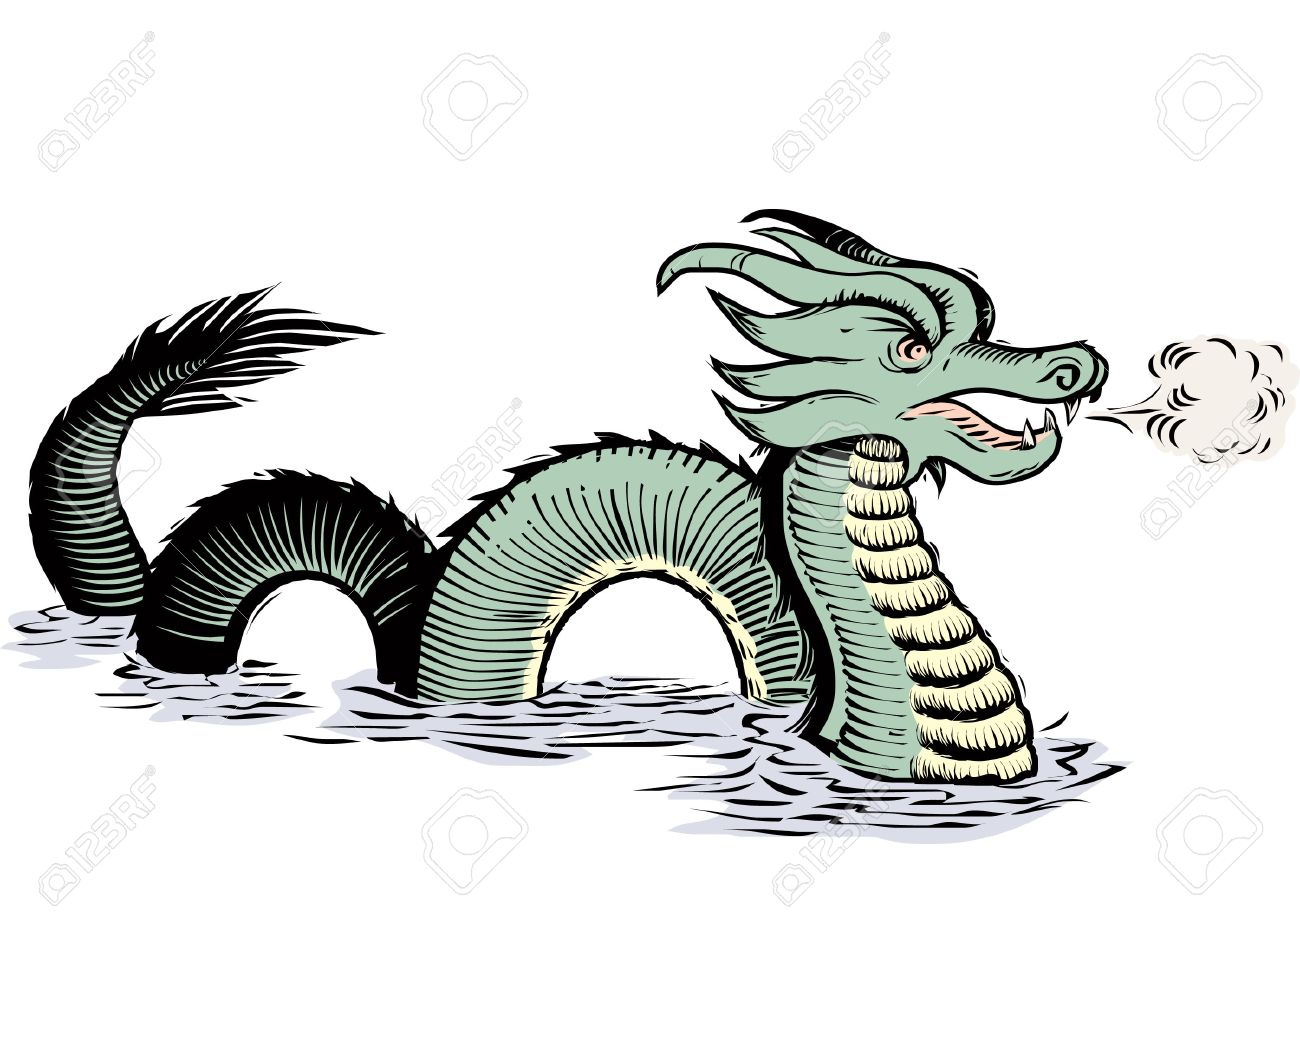 Sea monsters clipart 4 » Clipart Station.